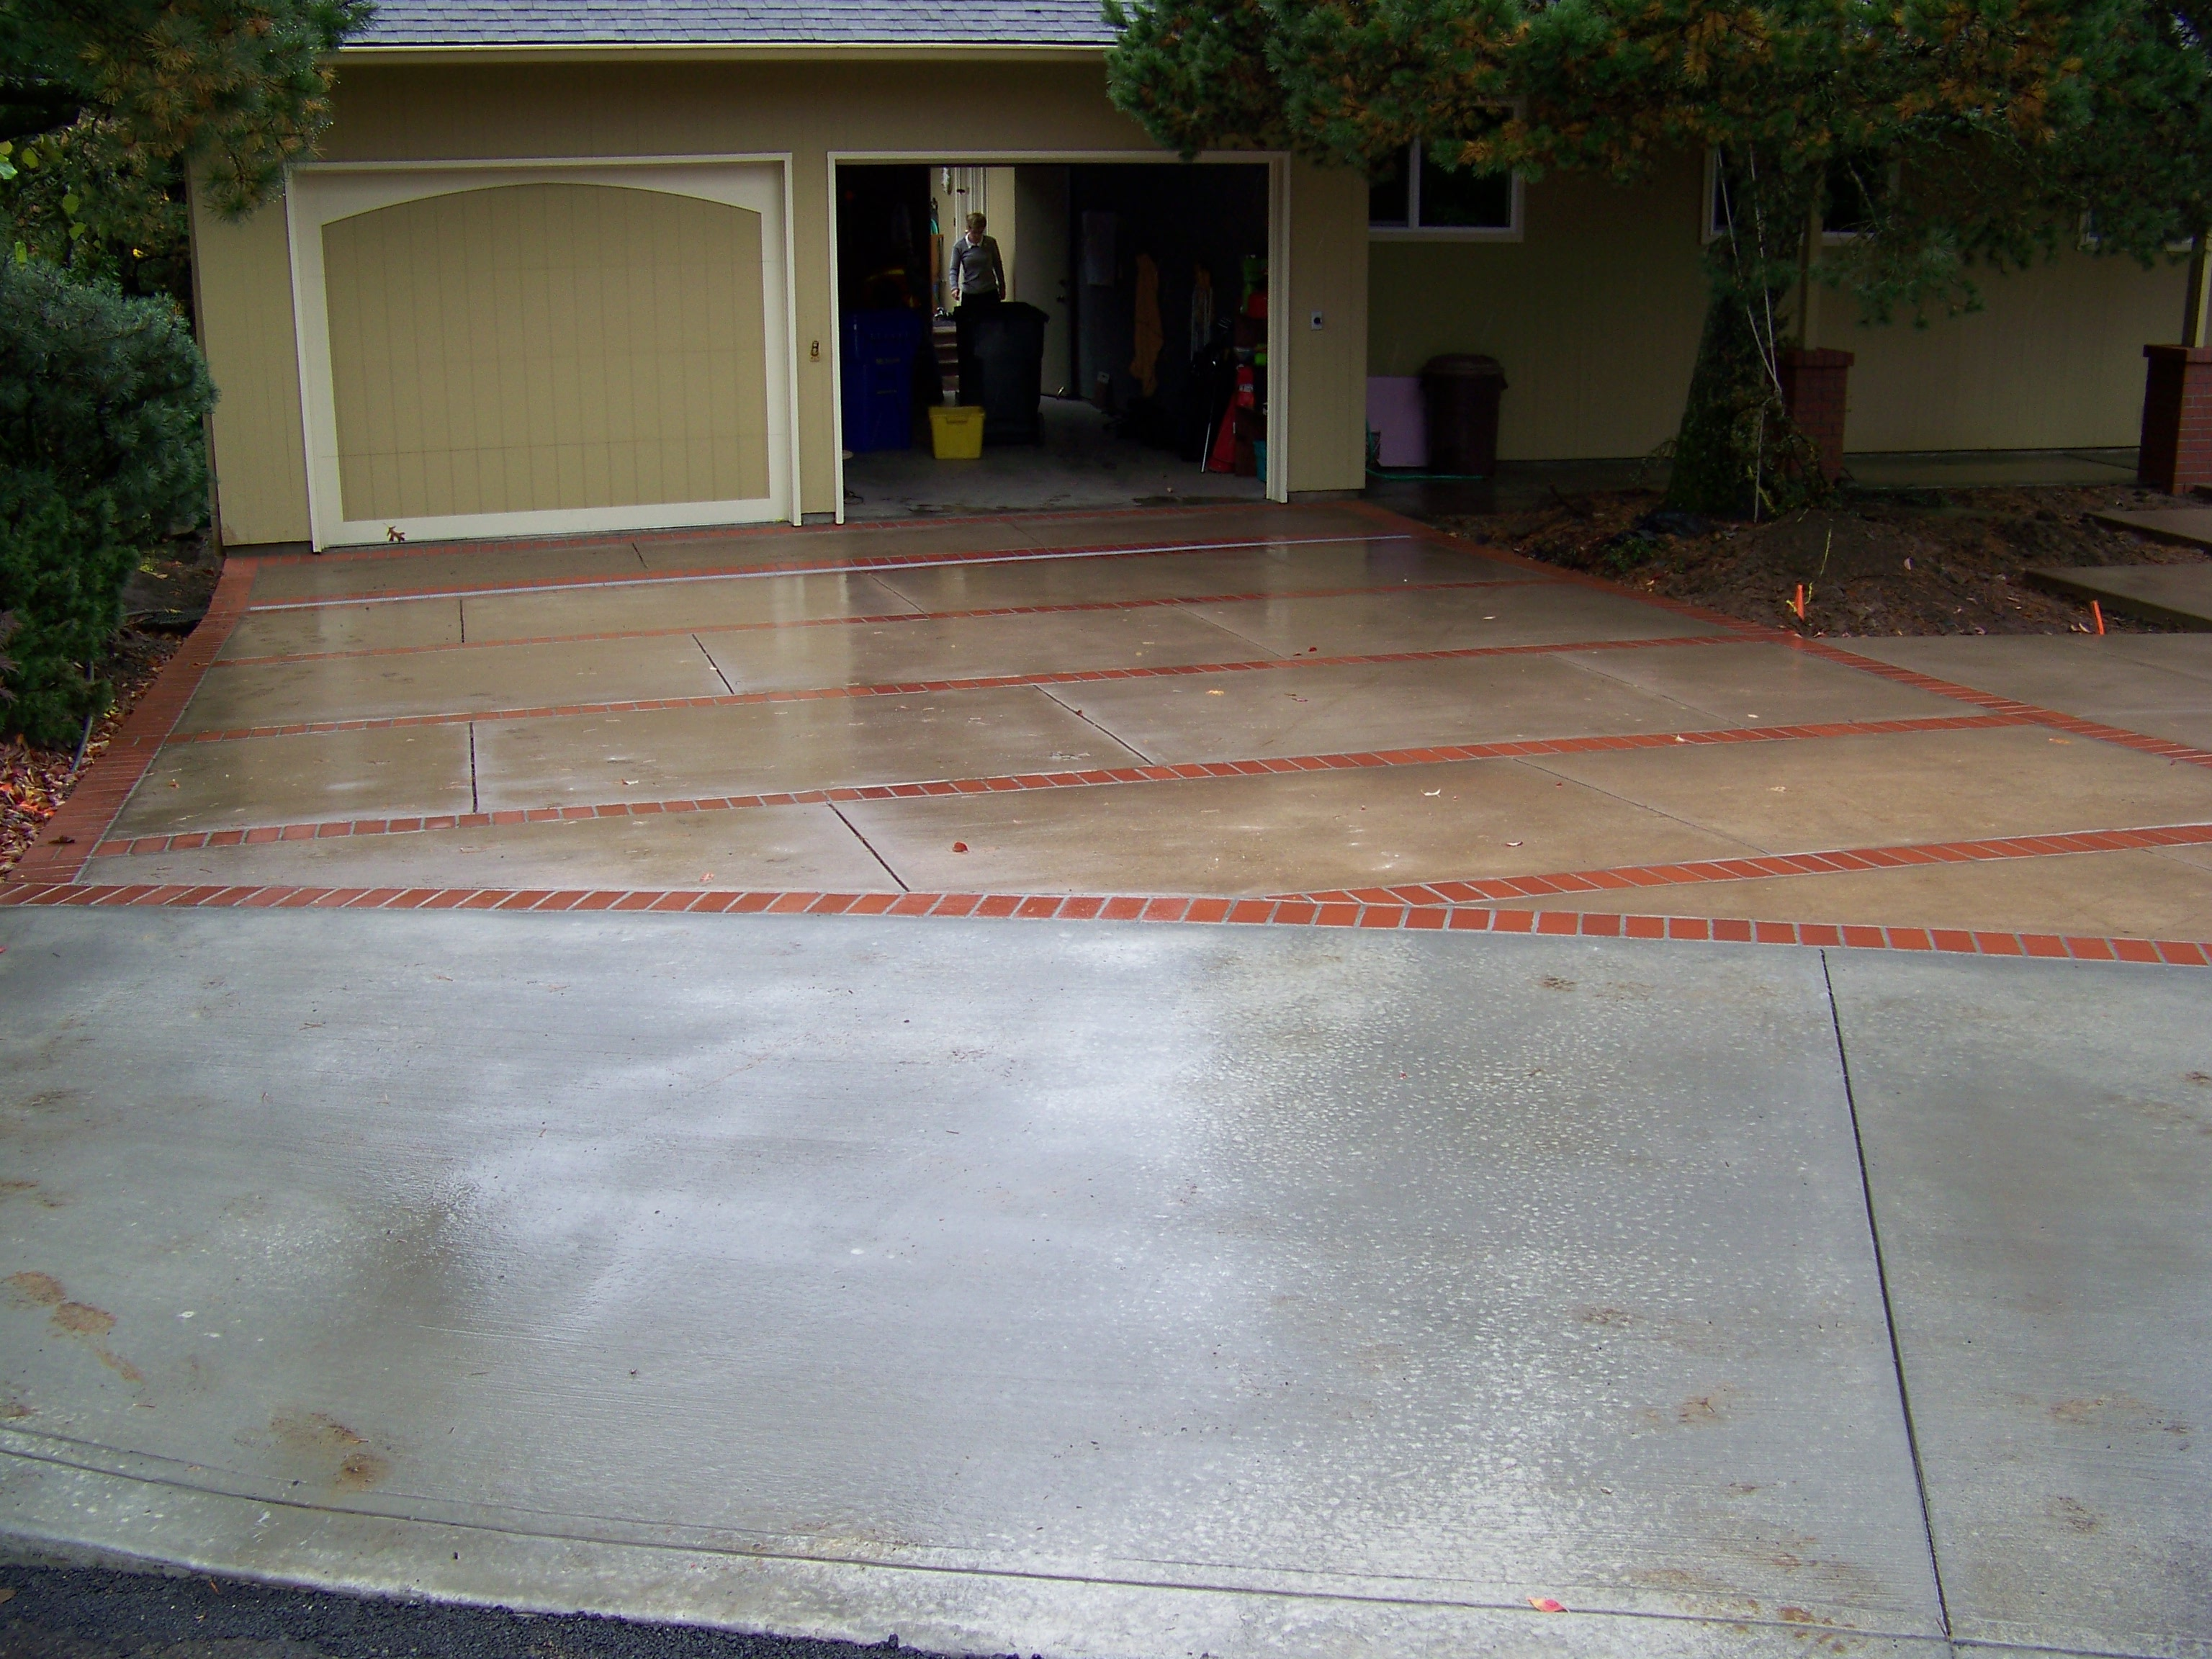 Superieur We Install Concrete Driveway Concrete Driveways  ,sidewalks,walkways,Concrete And Brick Patio Combinations / Driveway Repair  Or Replacement / Colored ...